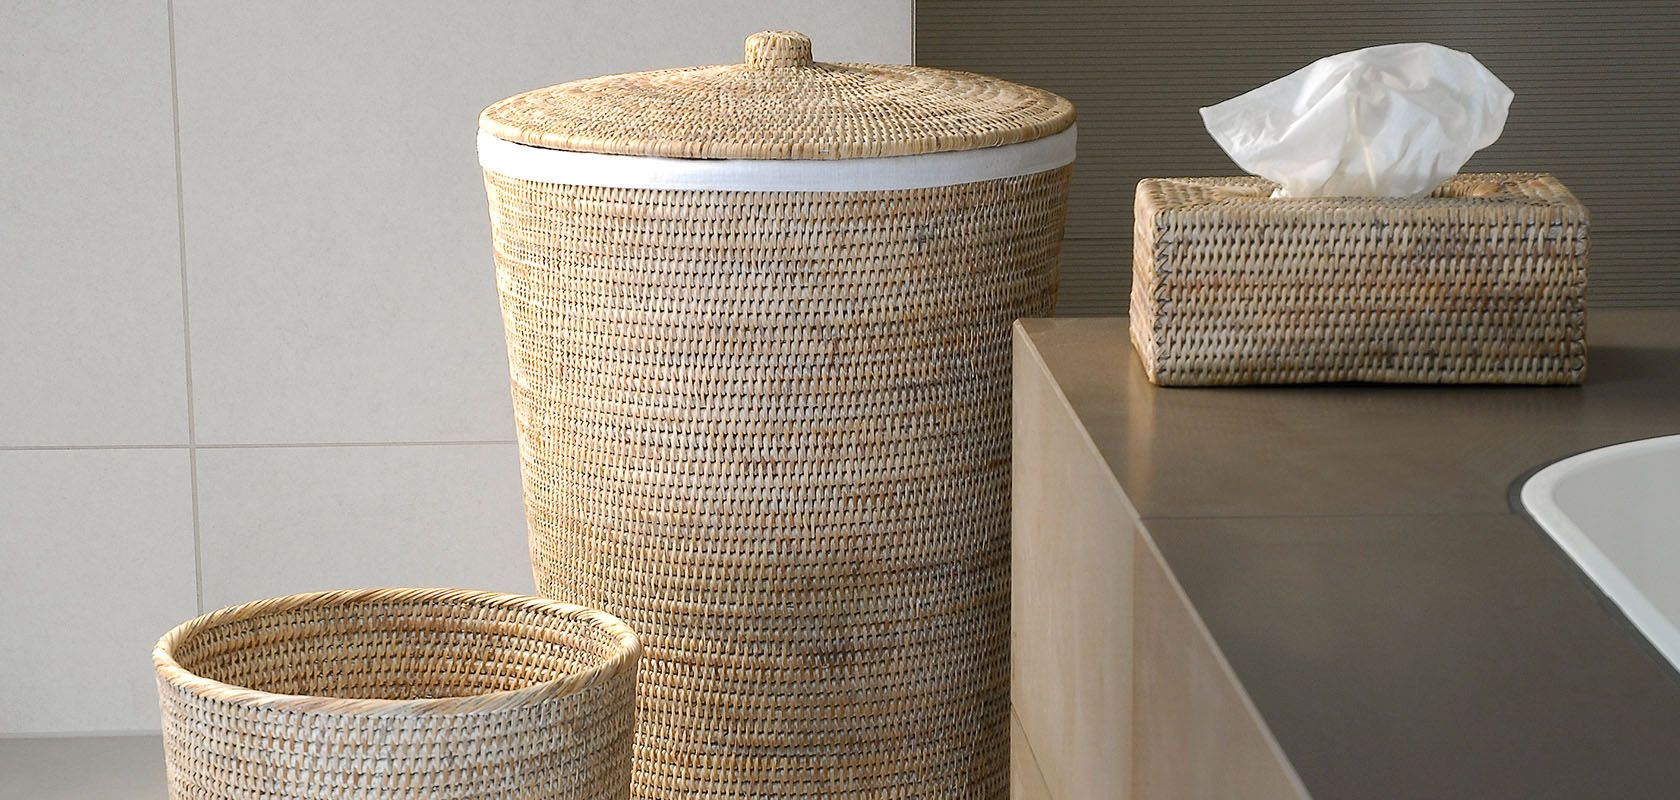 decor-walther_laundry-basket